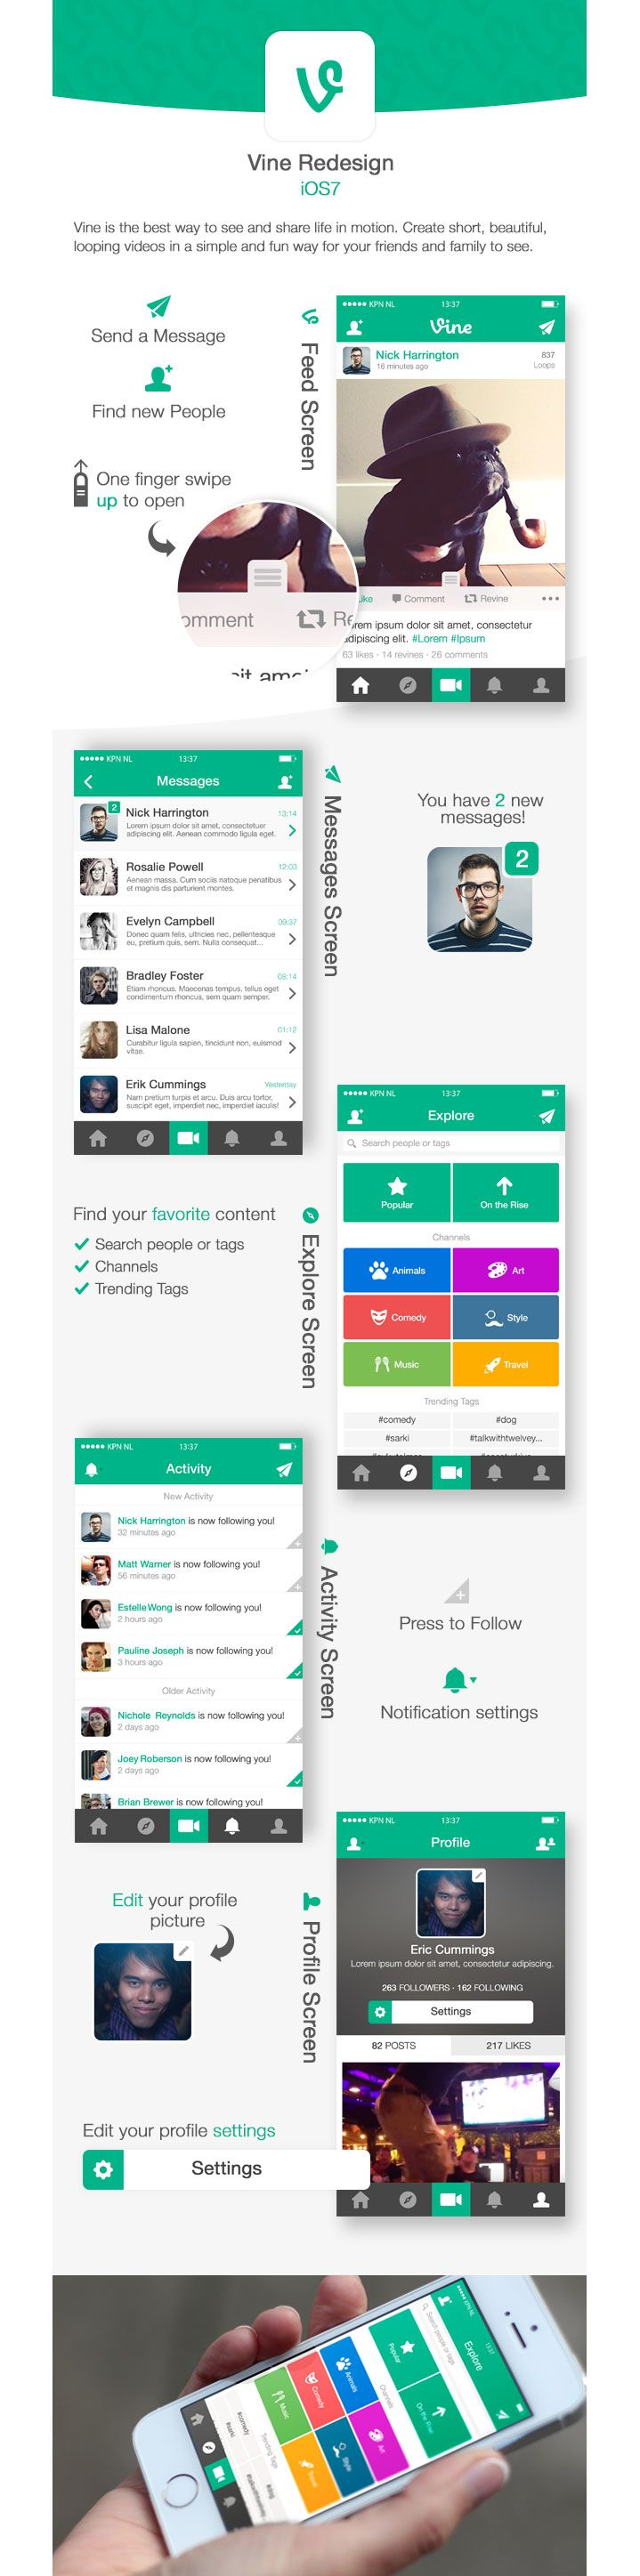 Pretty flat design with matching colors and pretty icons